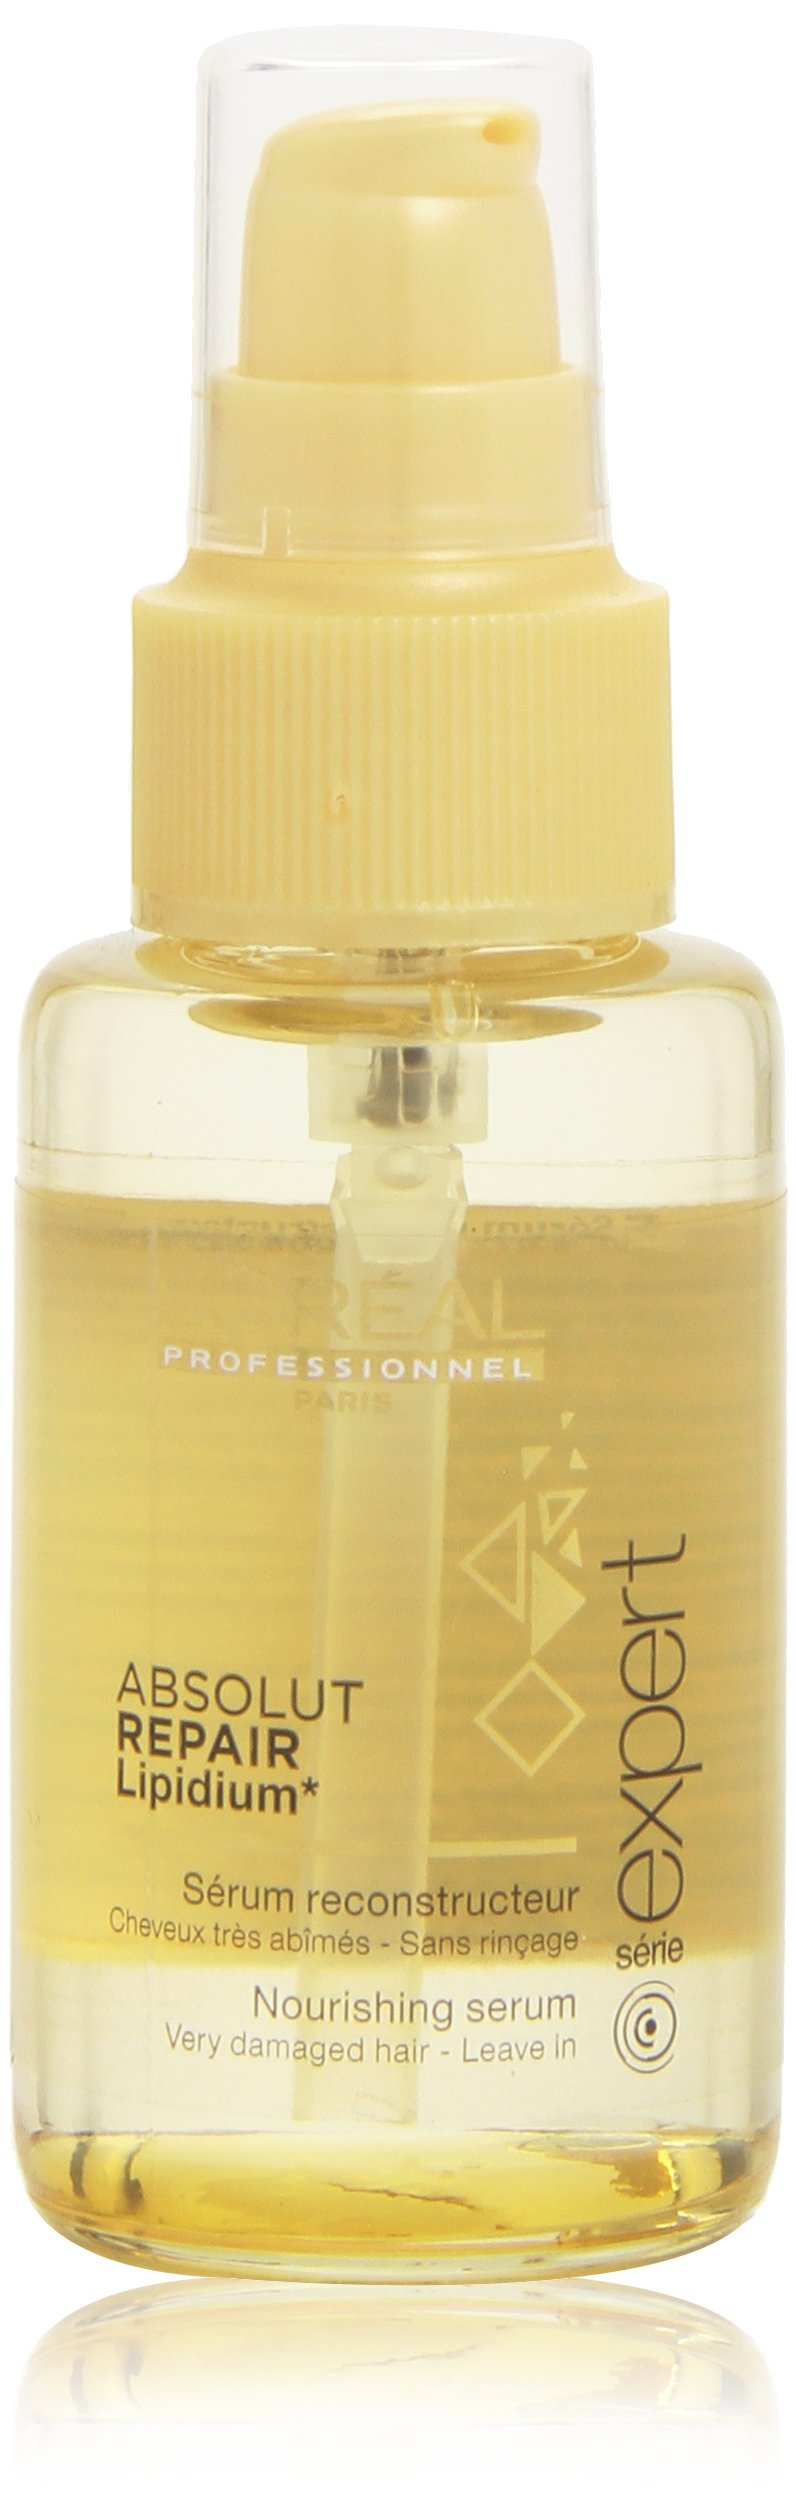 L'Oreal Professional Serie Expert Absolut Repair Lipidium Nourishing Serum, 1.69 Ounce